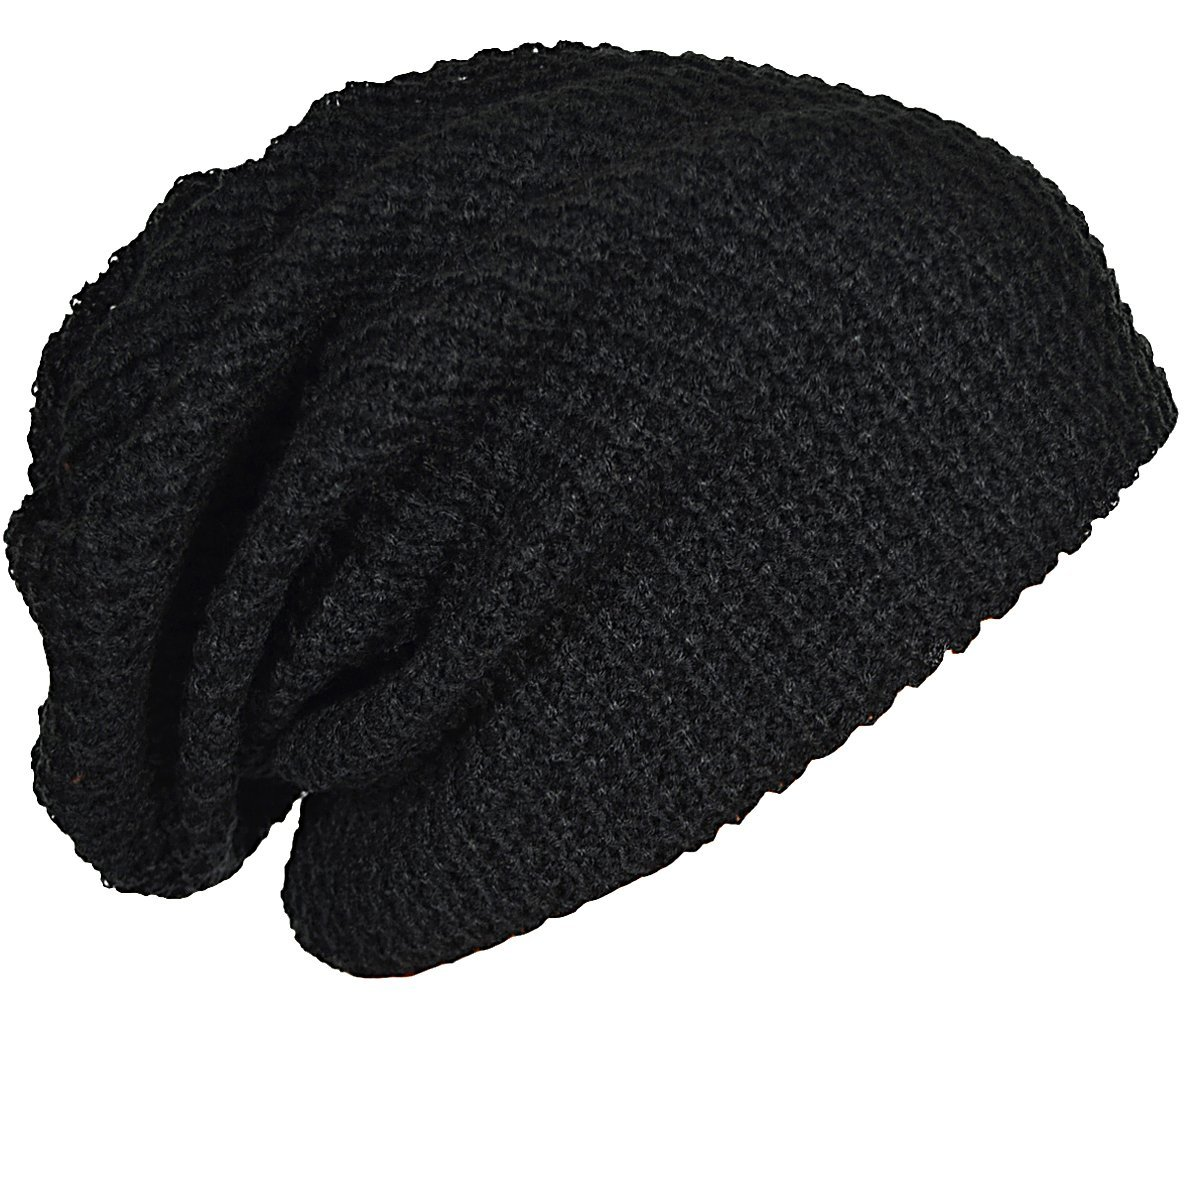 12a33140d1d Mens Slouchy Long Oversized Beanie Knit Cap for Summer Winter (Black)   Amazon.co.uk  Clothing